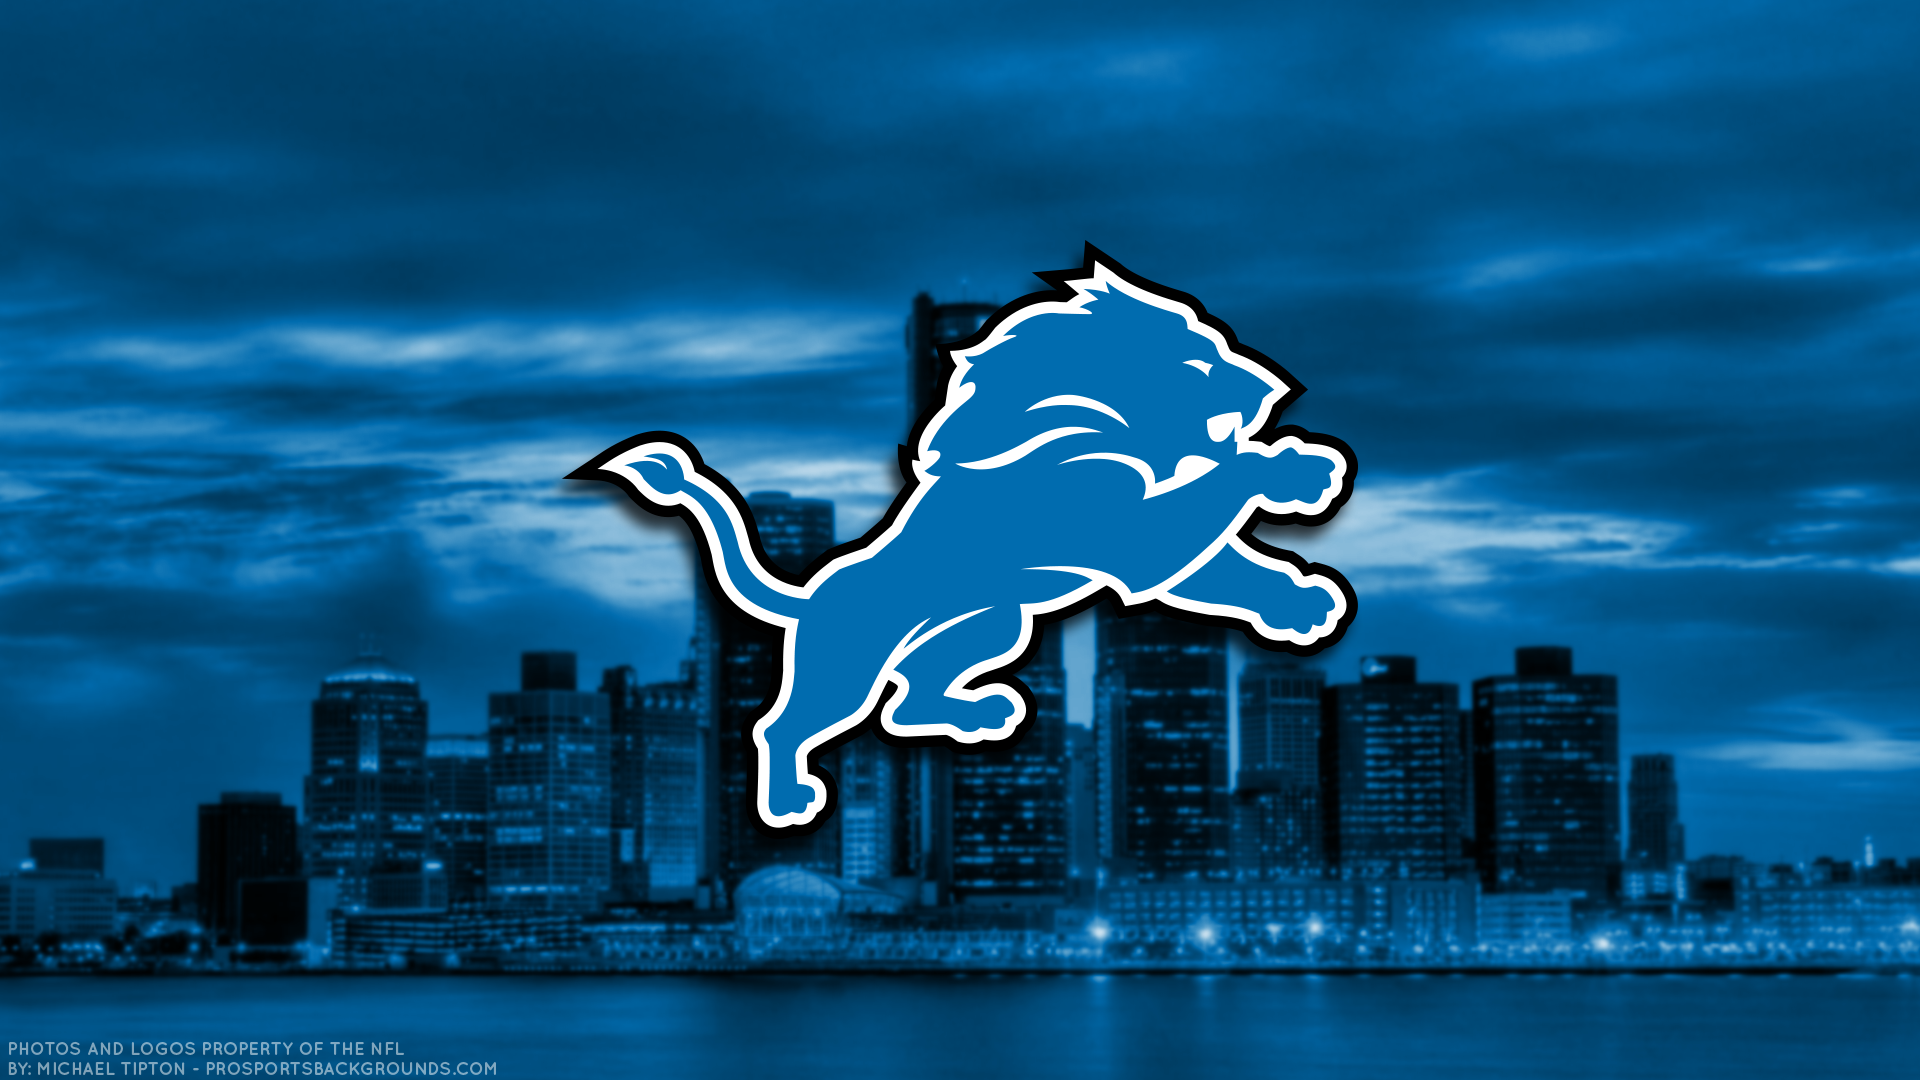 9250 detroit lions wallpaper and backgrounds 1920x1080